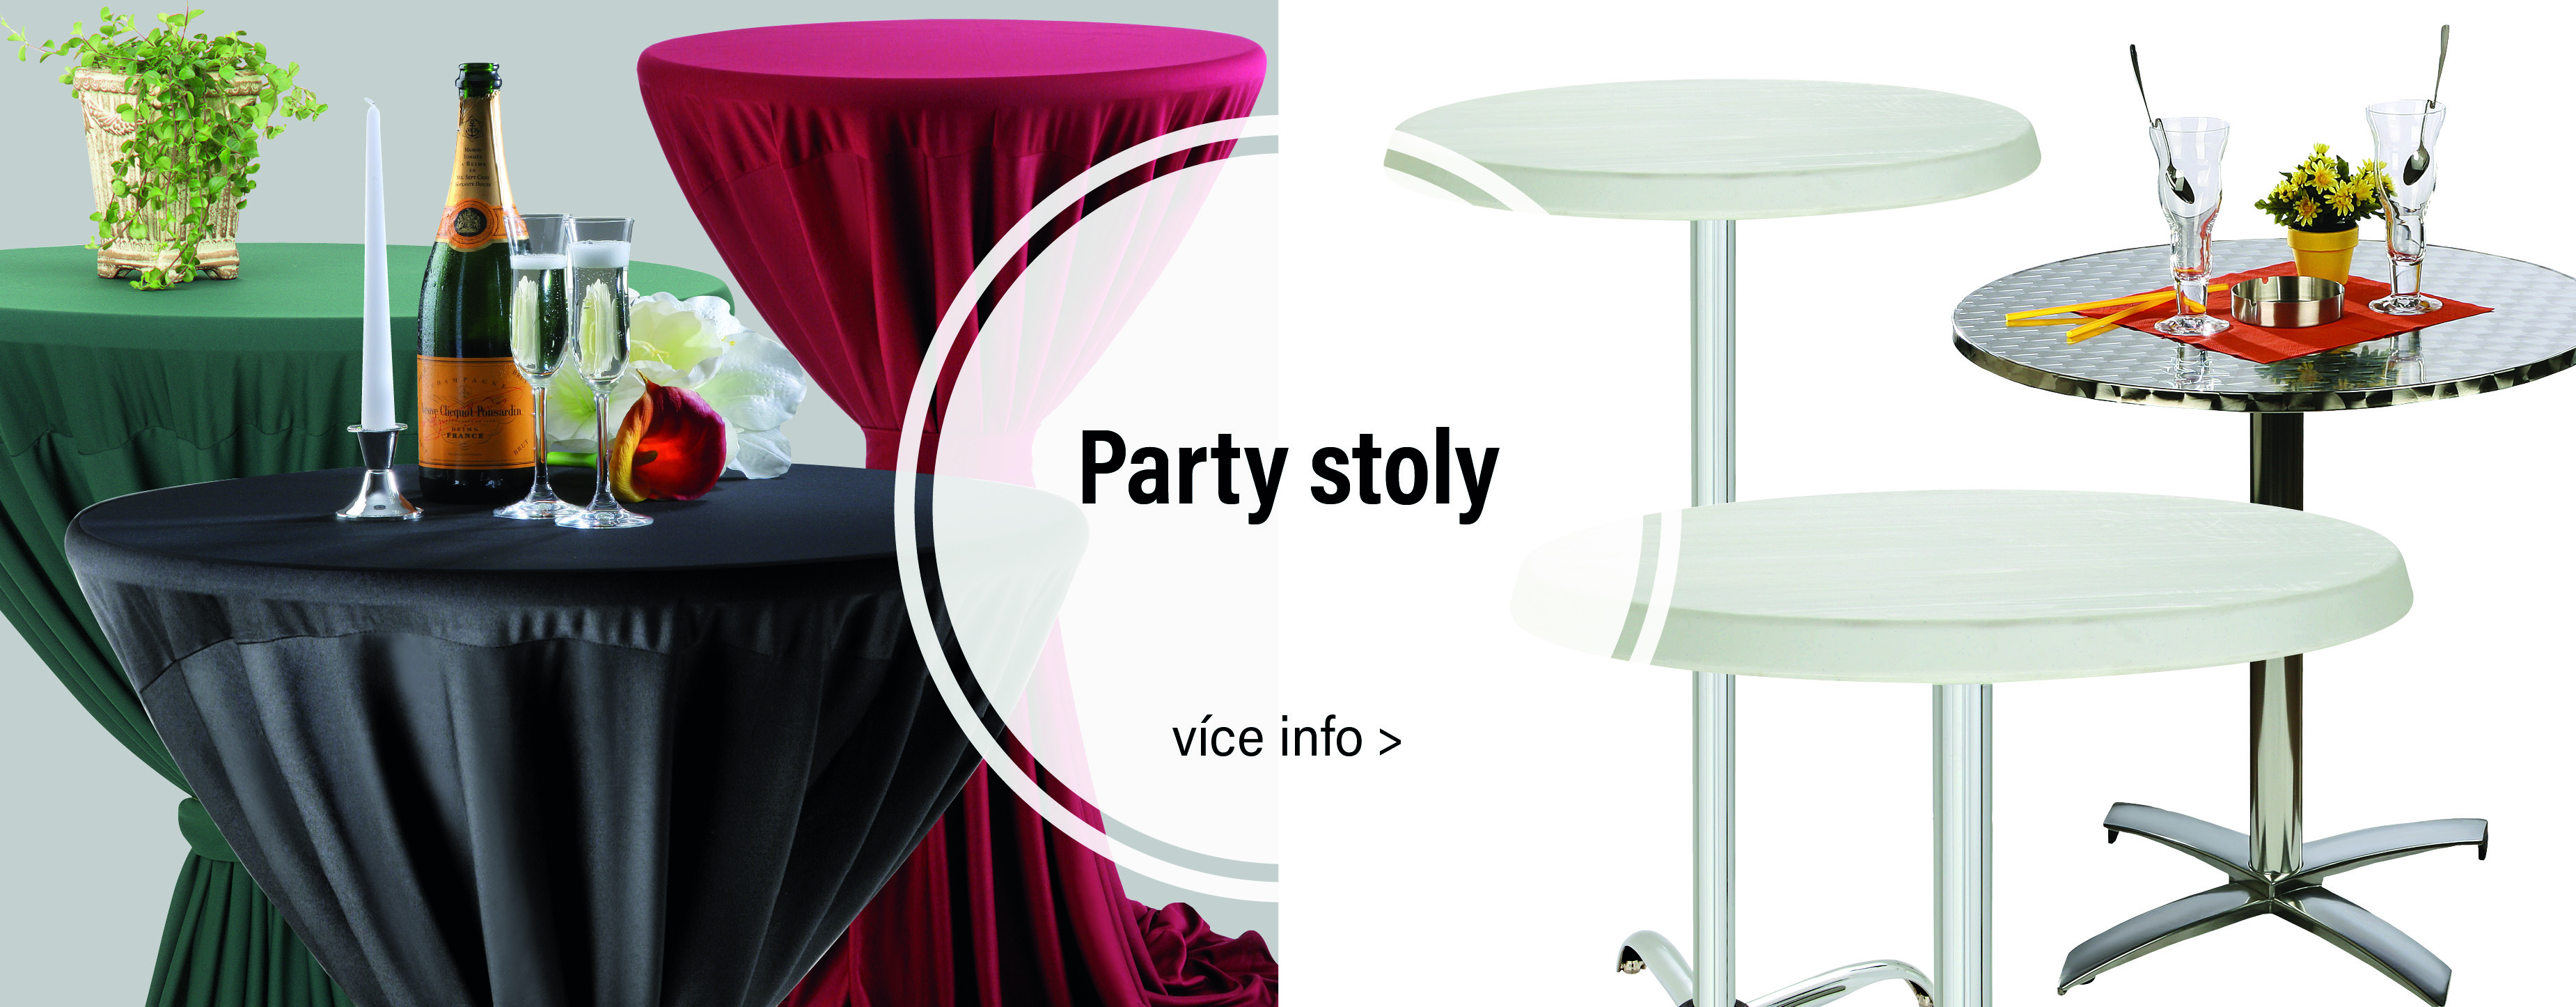 party-stoly